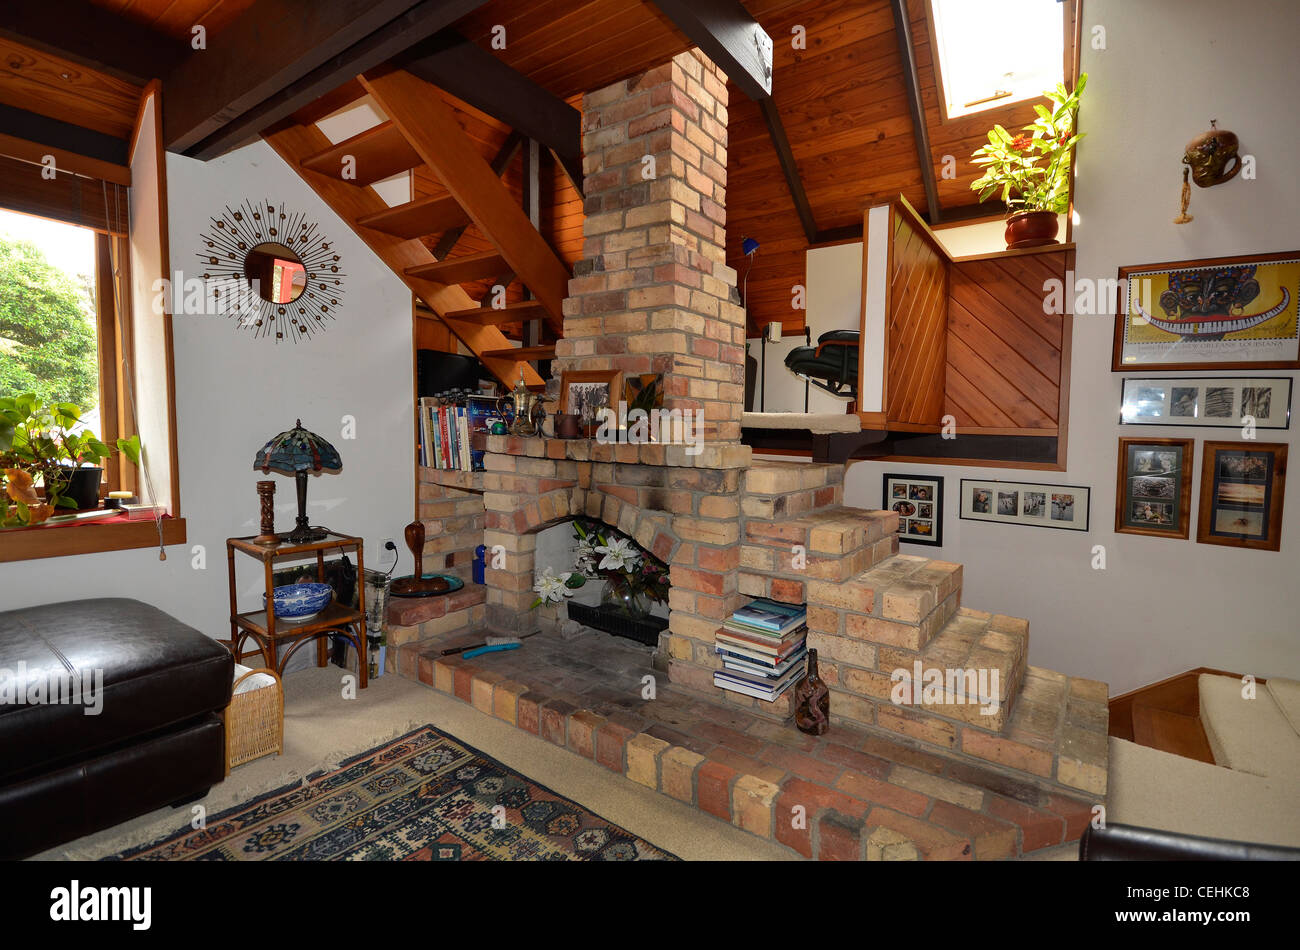 open brick fireplace and chimney sitting room 1978 timber house